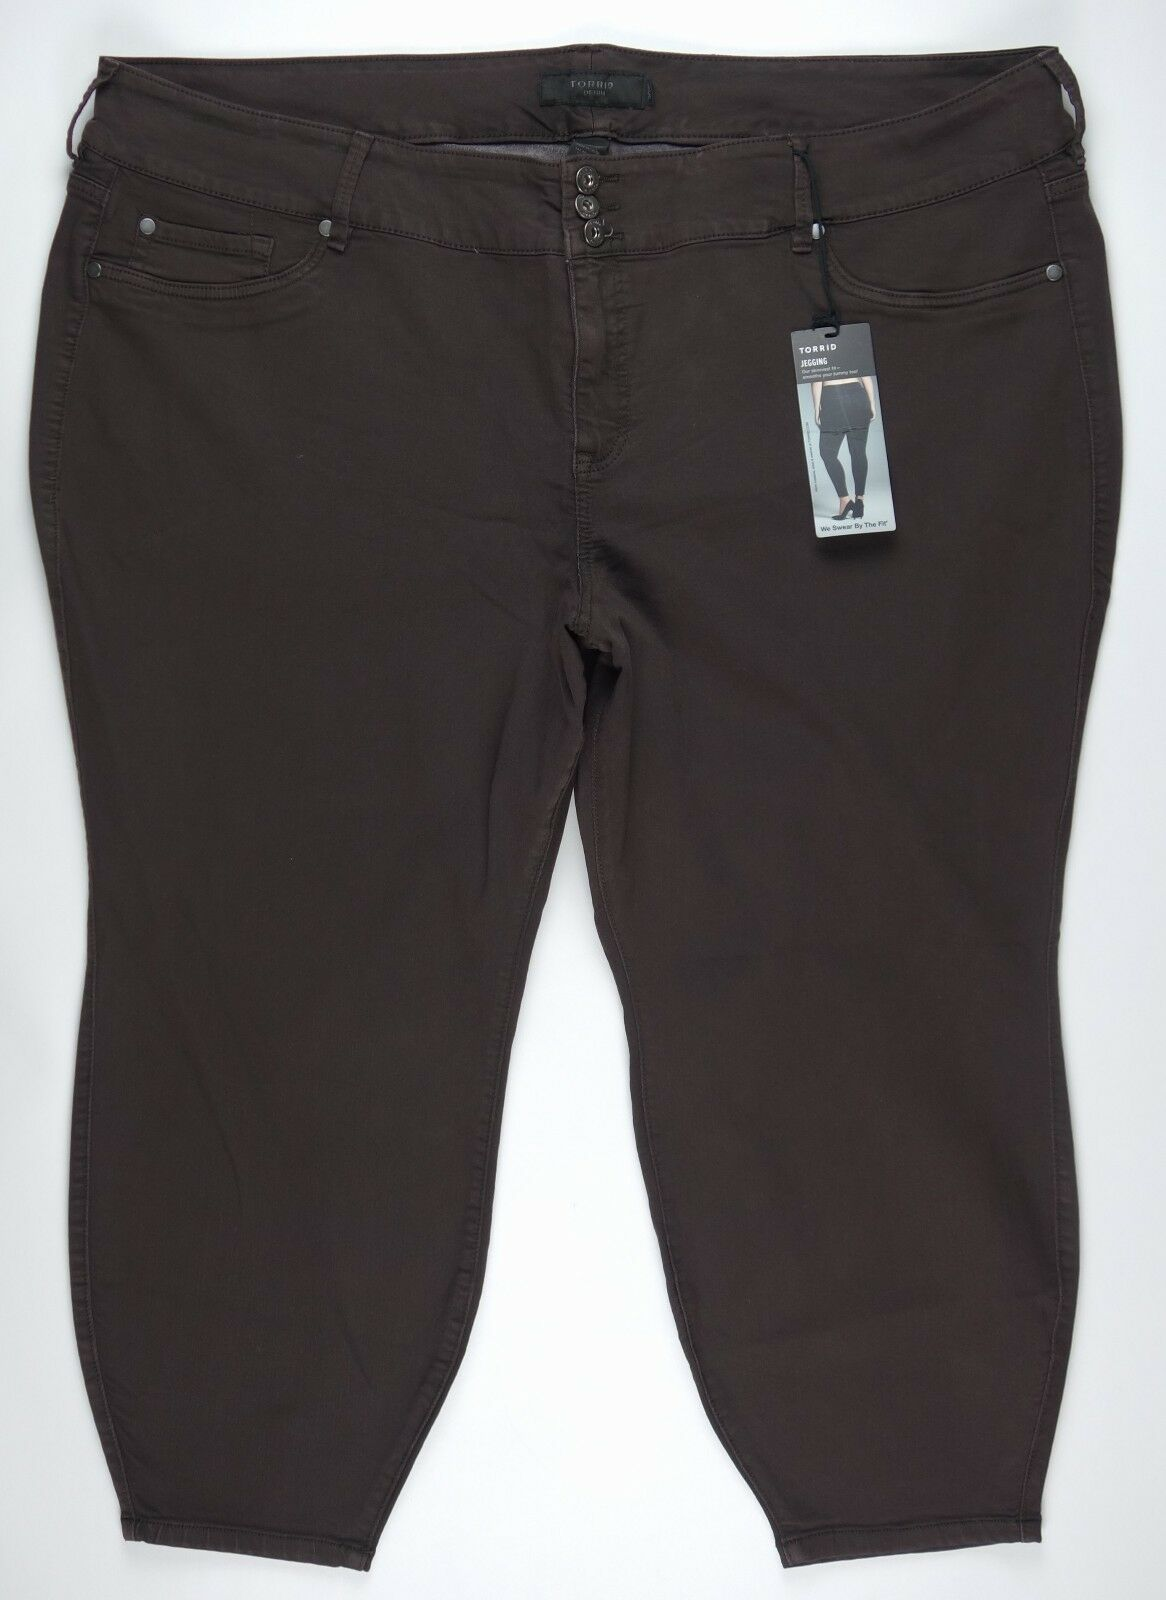 TORRID  Womens  JEGGING DARK BROWN XSHORT Jeans  Size 30XS NWT